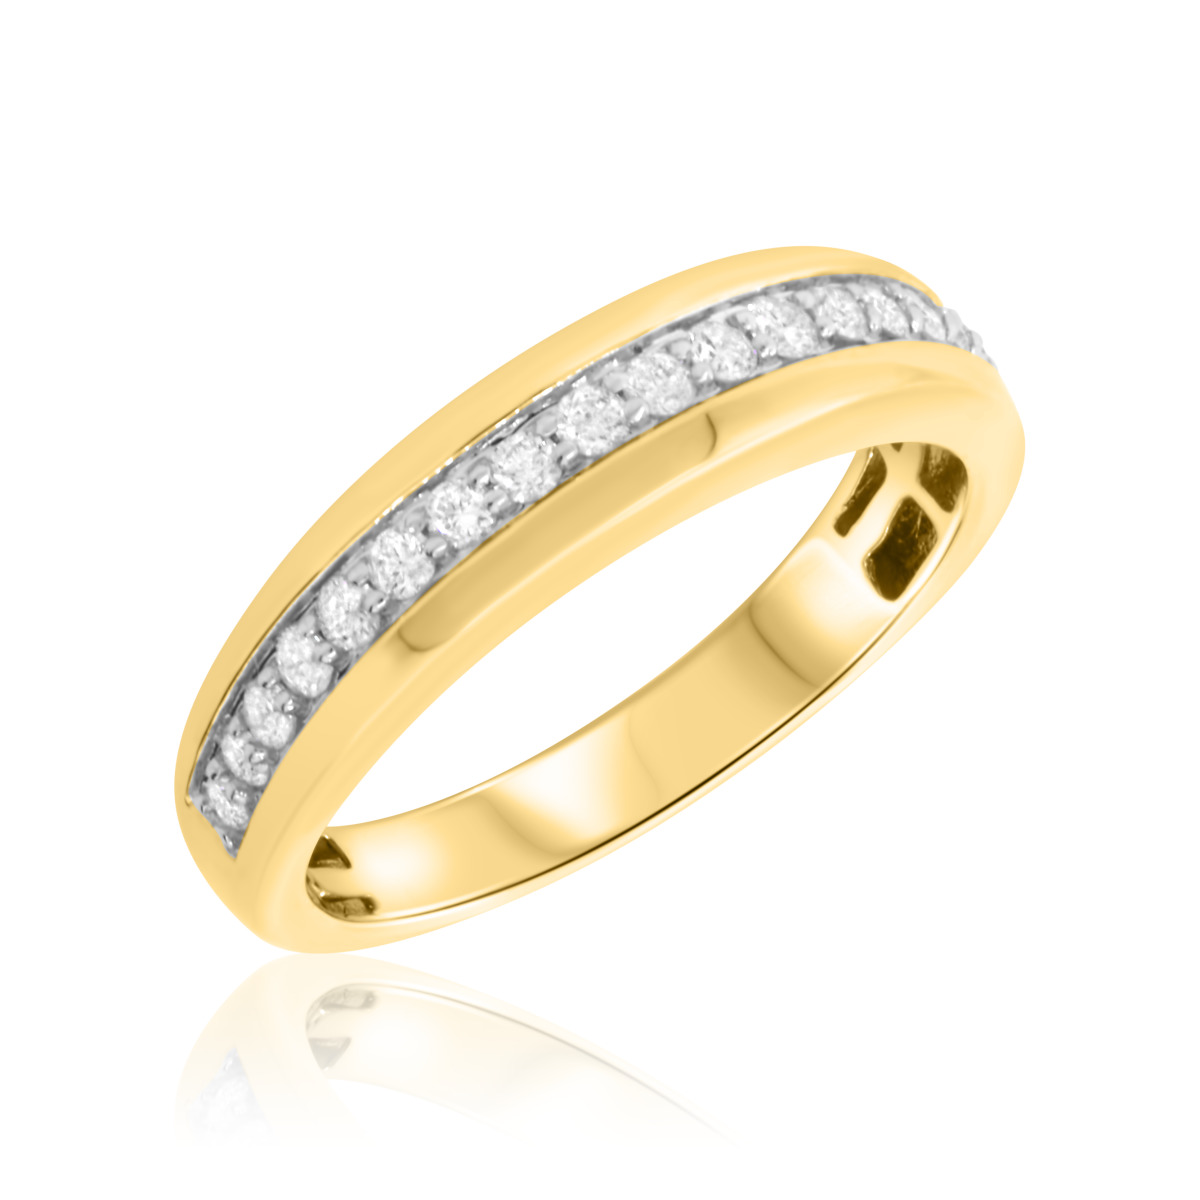 1/2 CT. T.W. Diamond Mens Wedding Band 14K Yellow Gold